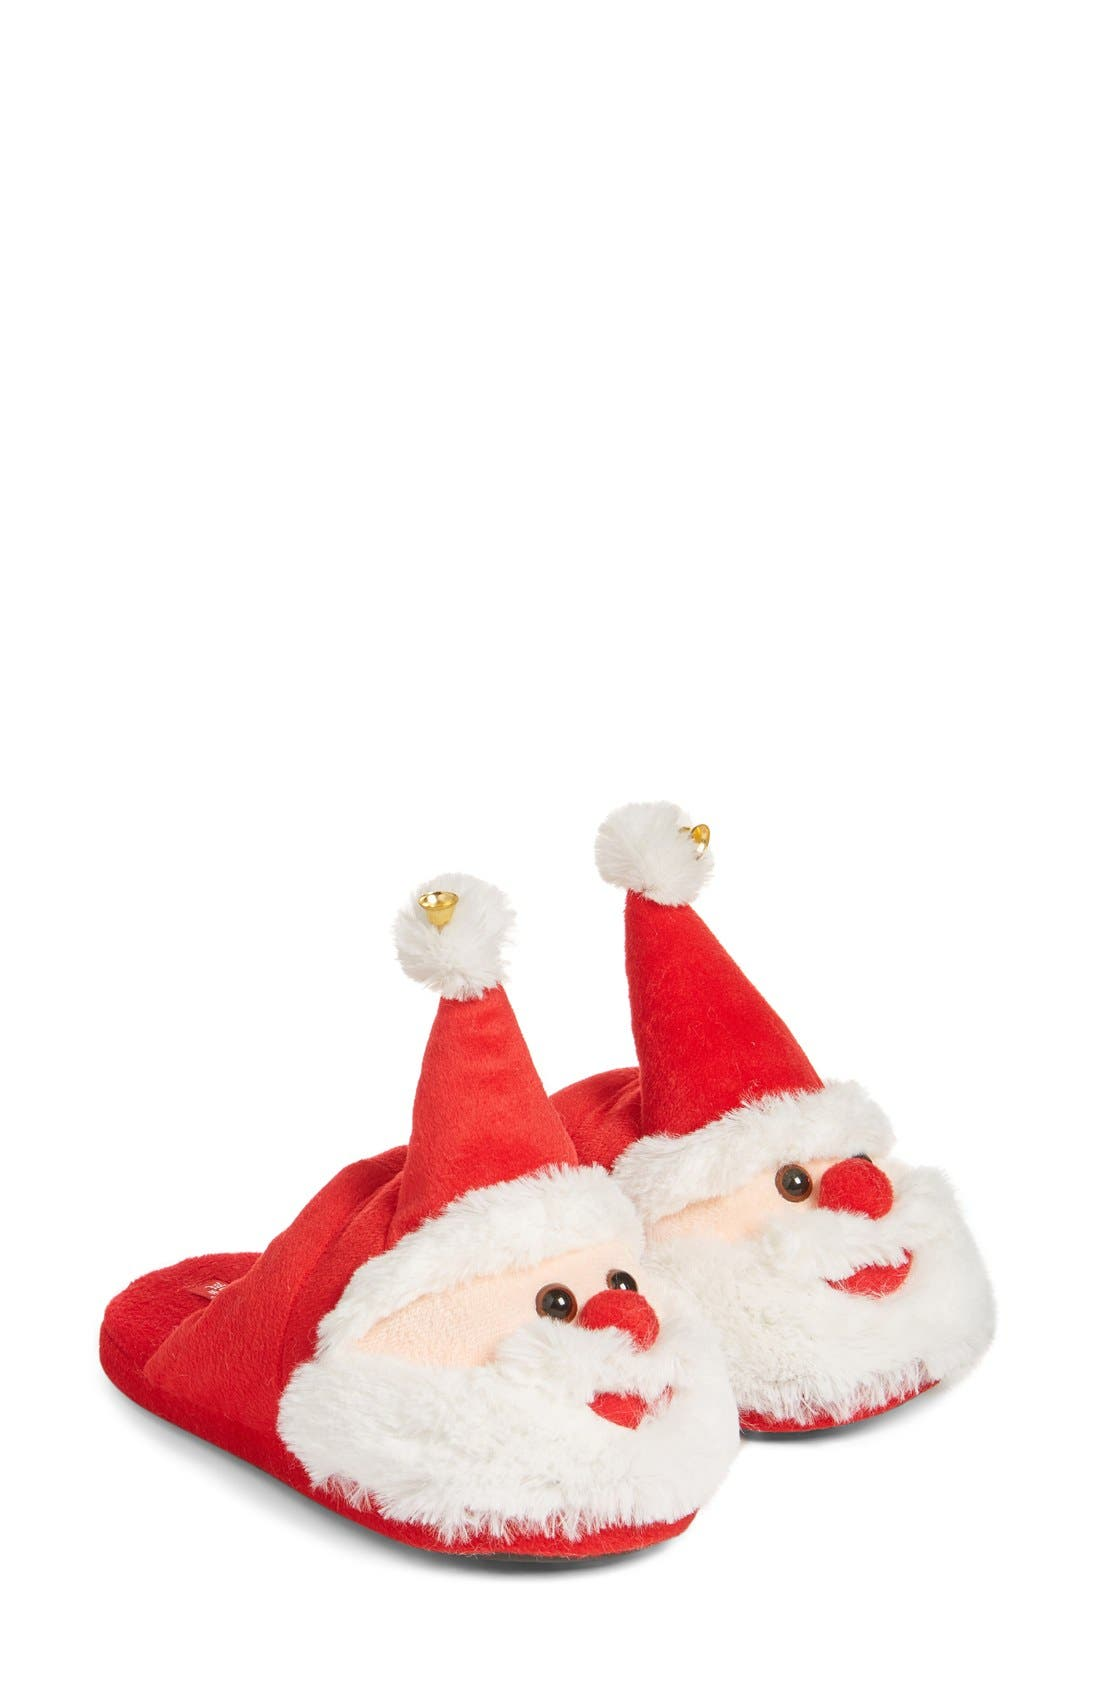 Ugly Christmas Slippers Santa Scuff Slippers